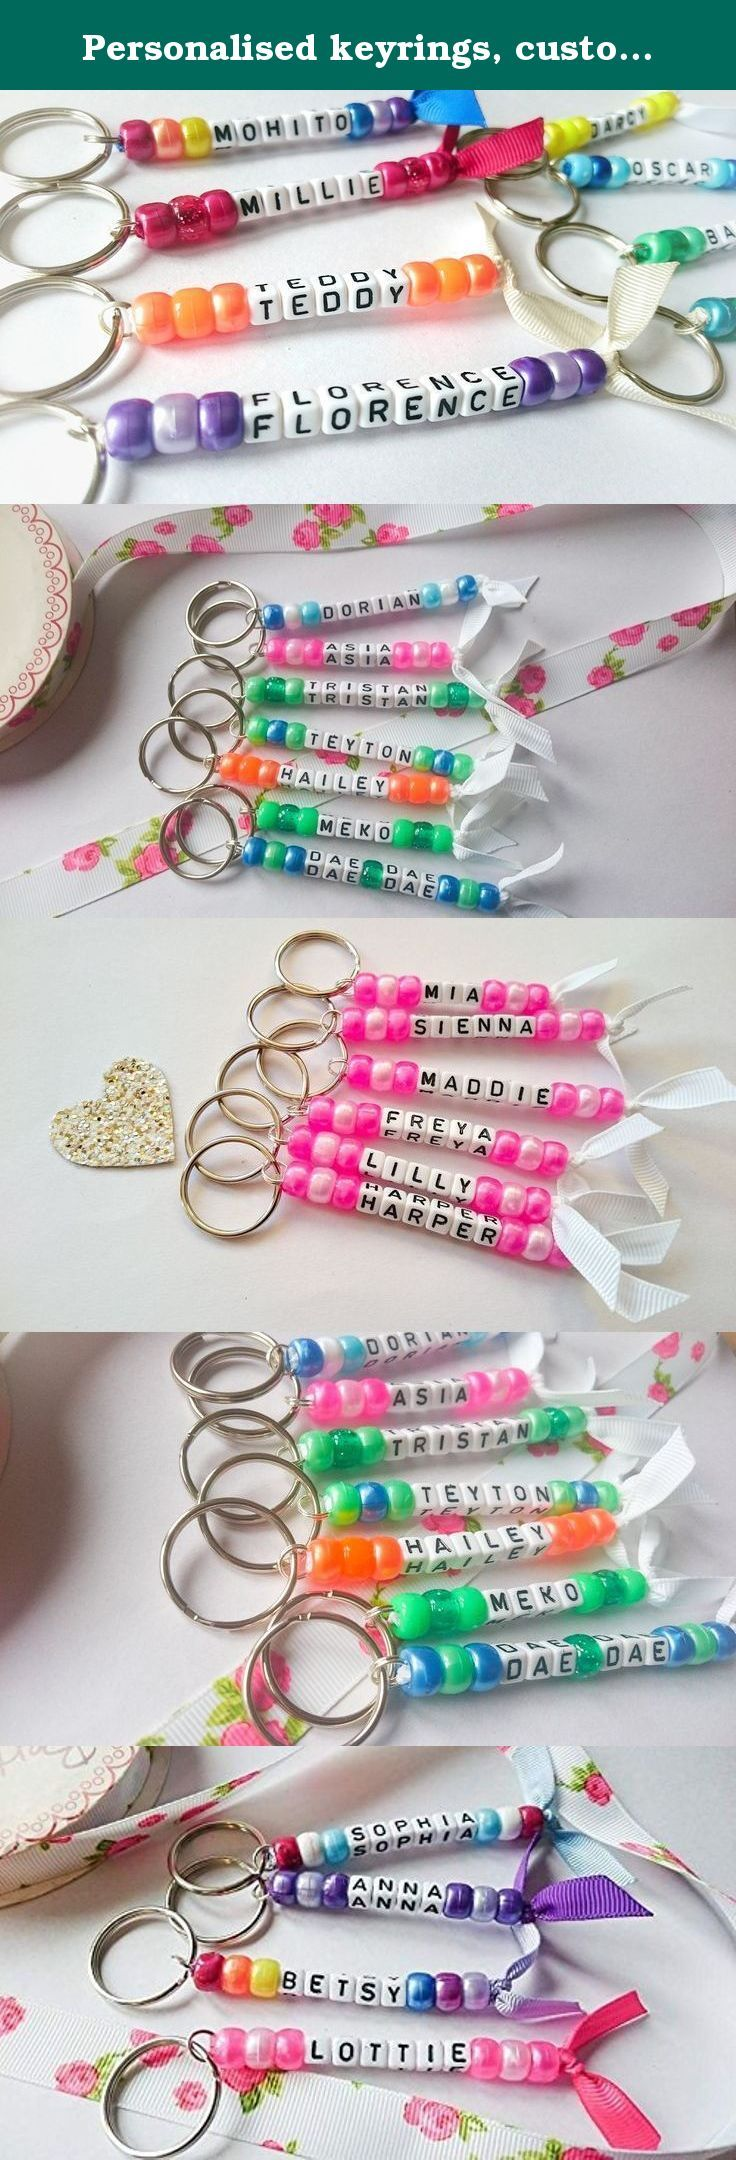 Personalised keyrings, custom keychain. Personalised keyrings/keychains Perfect for keys, school bags, kindergarten bags, nursery bags, hen night favors, party favors and so much more! A variety of colours are available and any name can be done. All keyrings are made from non-toxic beads that are sourced and made in the USA and UK. All materials used are non-toxic and to the highest quality.